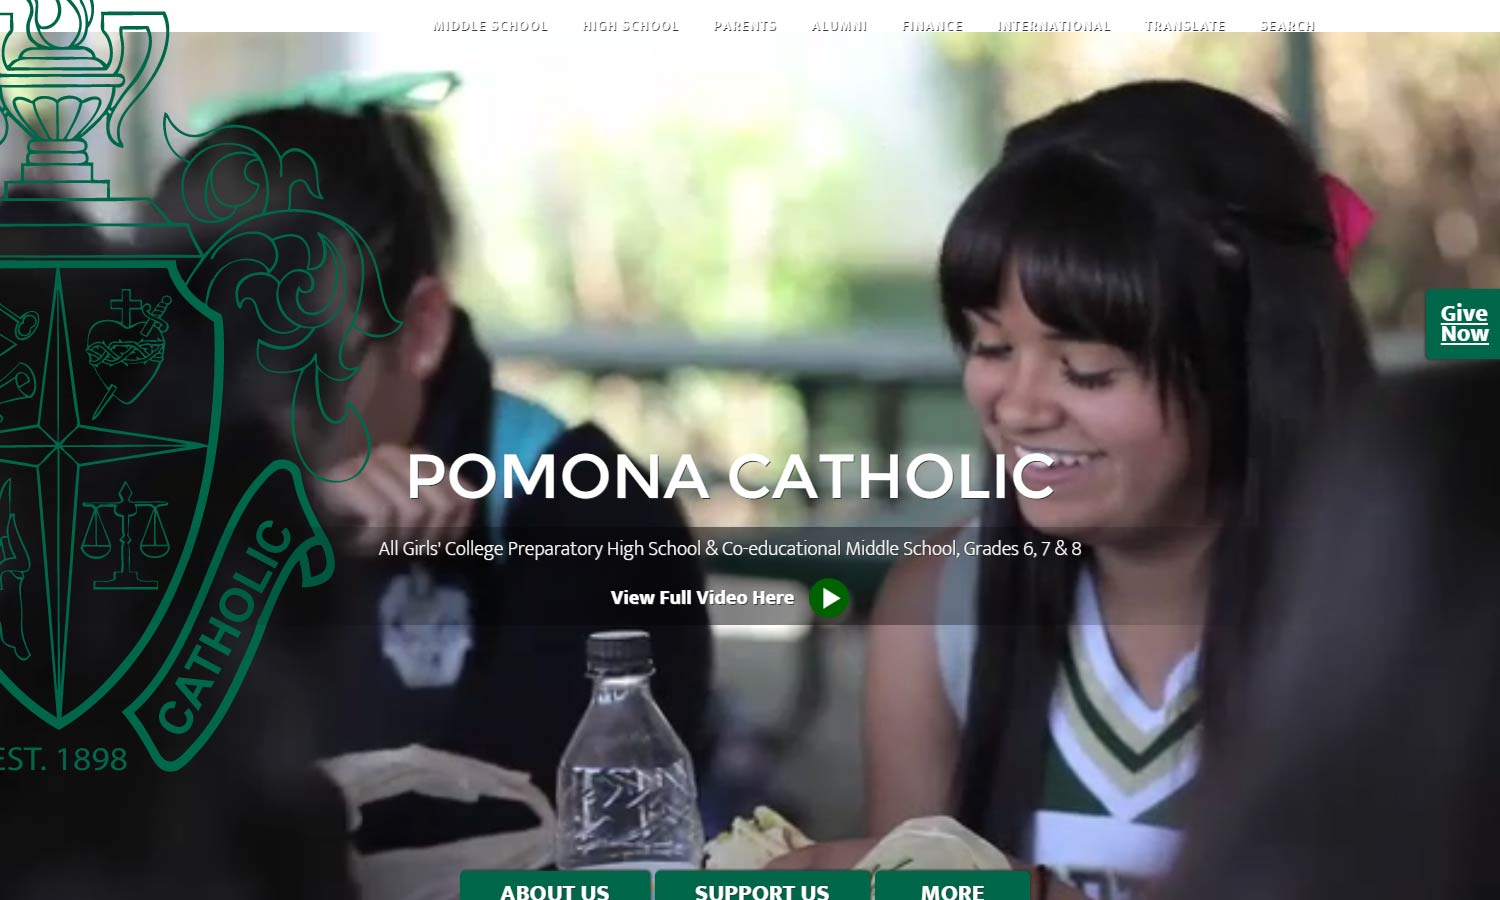 Pomona Catholic